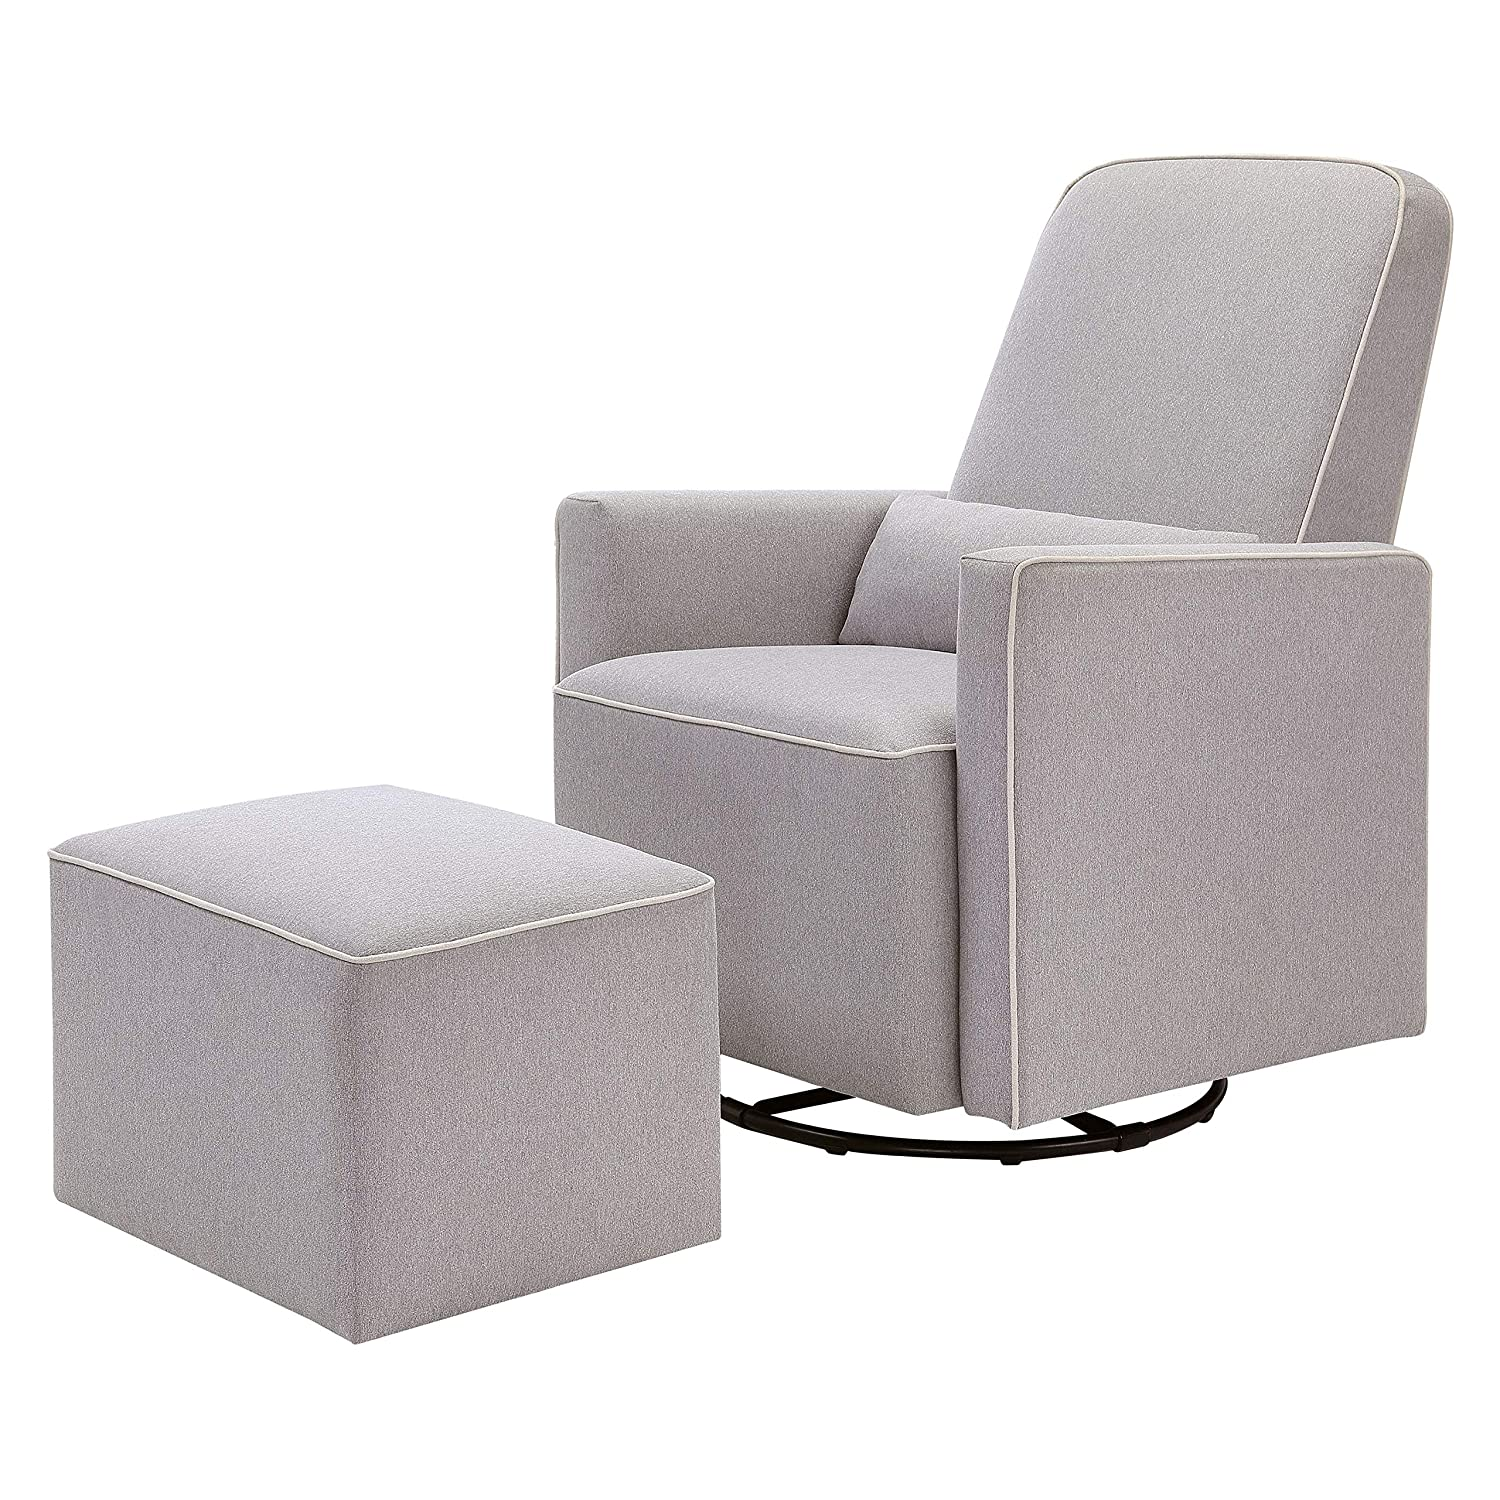 DaVinci Olive Upholstered Swivel Glider with Bonus Ottoman in Grey with Cream Piping